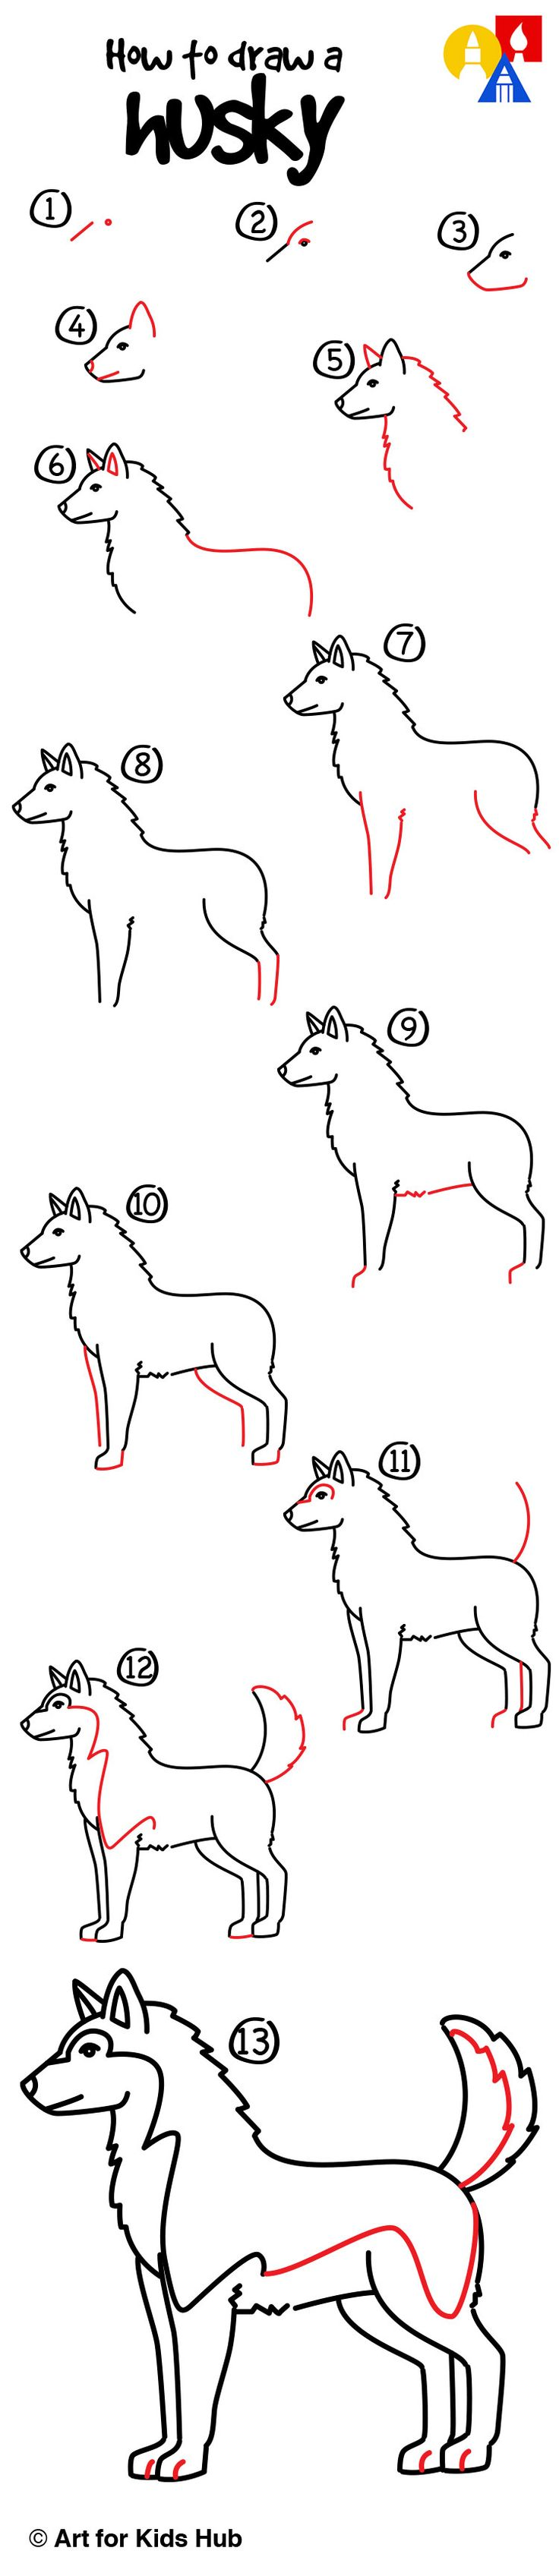 How To Draw A Realistic Husky  Art For Kids Hub